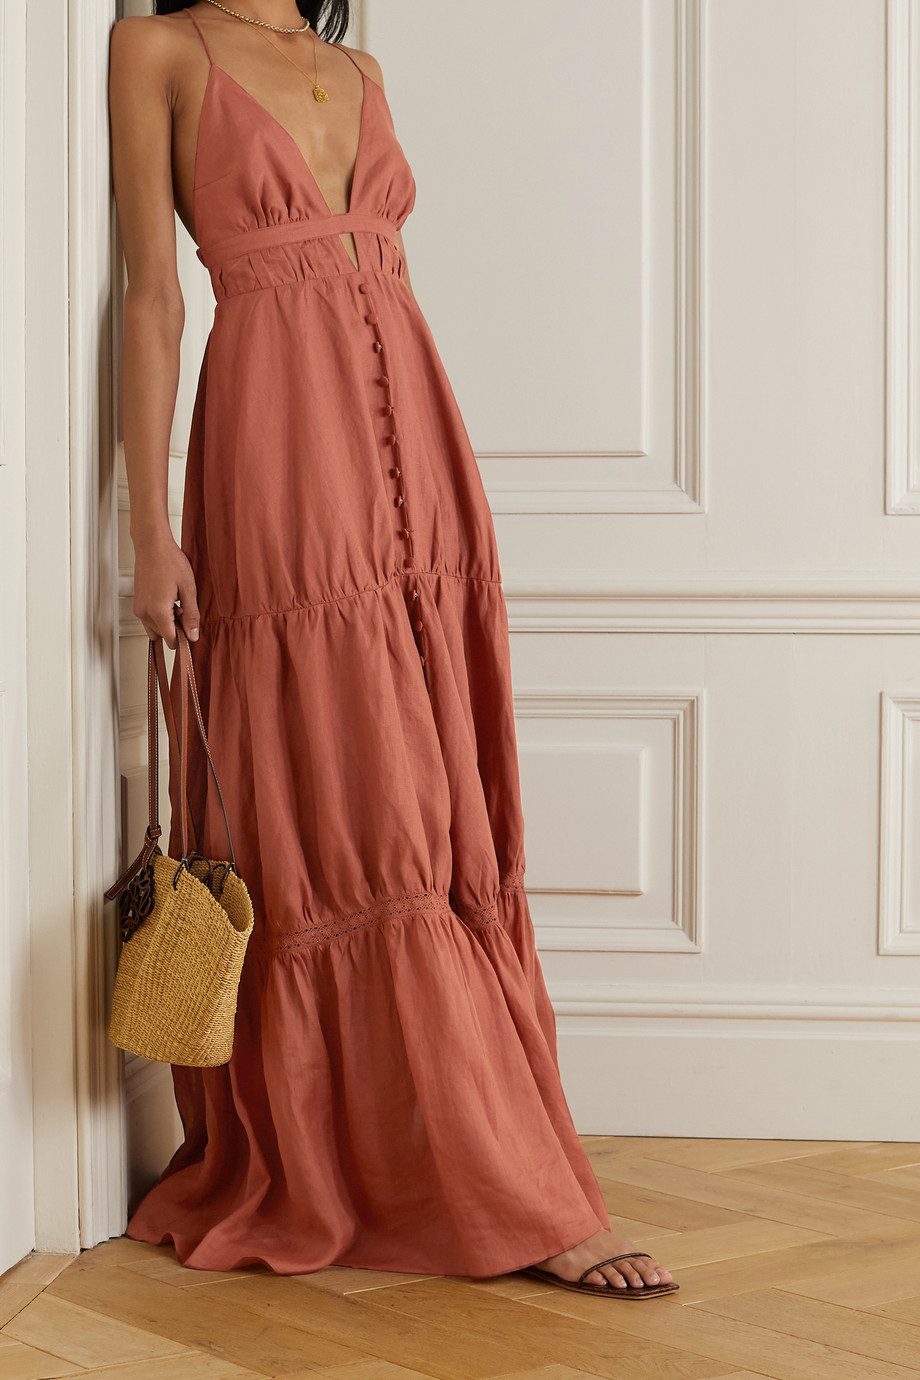 JOSLIN + NET SUSTAIN Liana tiered linen maxi dress